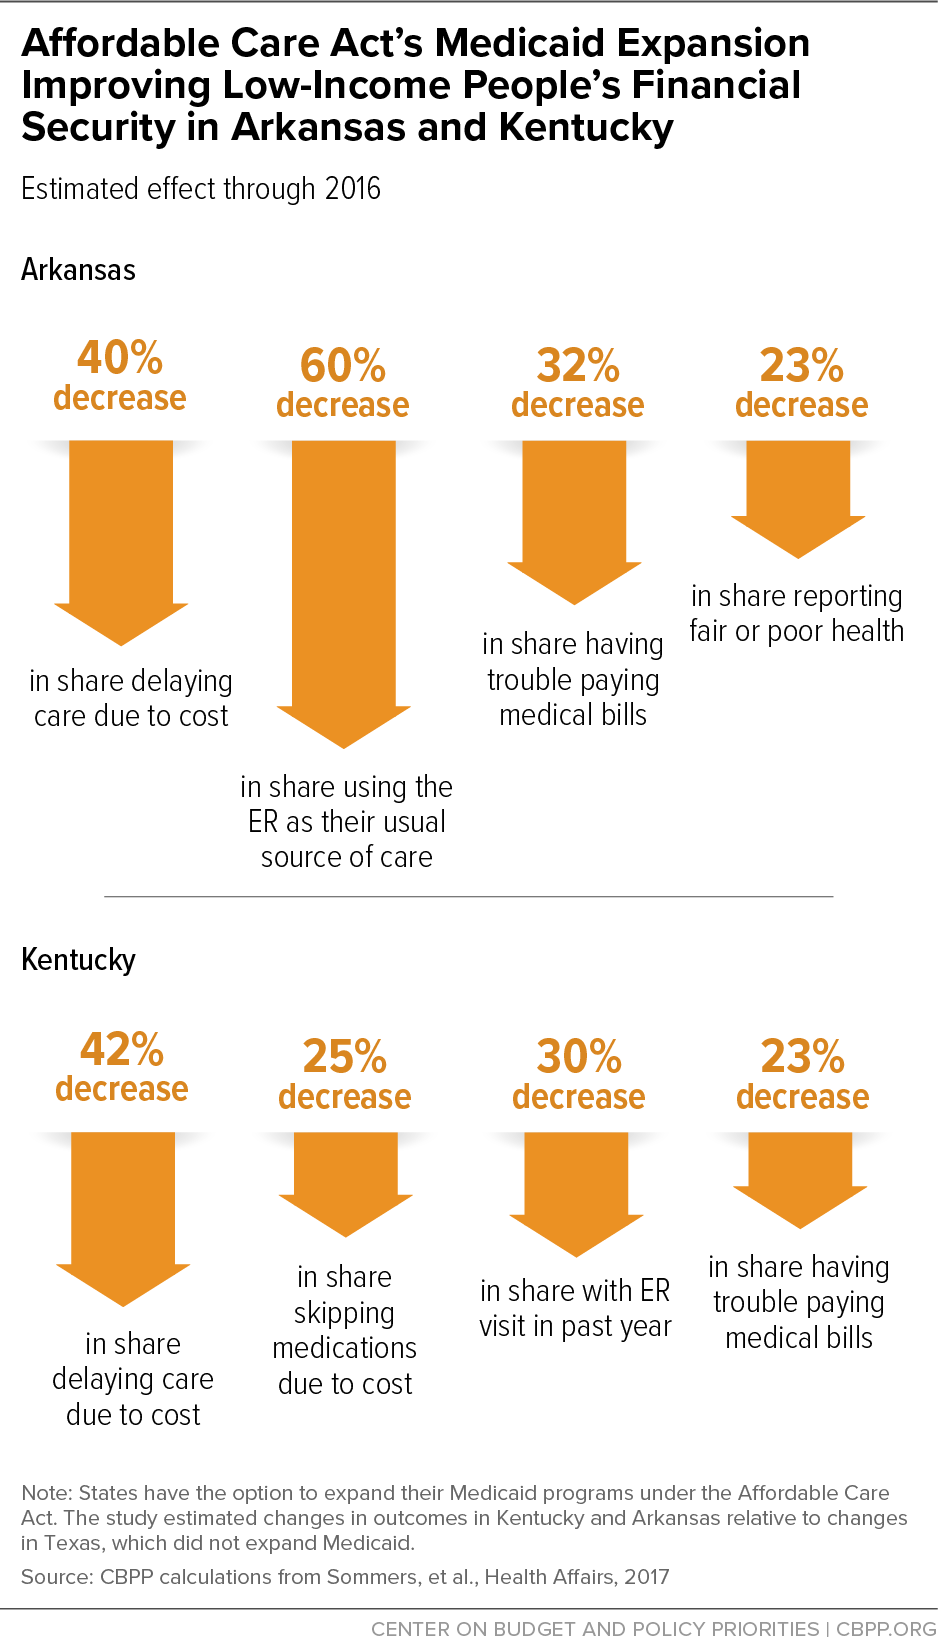 Affordable Care Act's Medicaid Expansion Improving Low-Income People's Financial Security in Arkansas and Kentucky